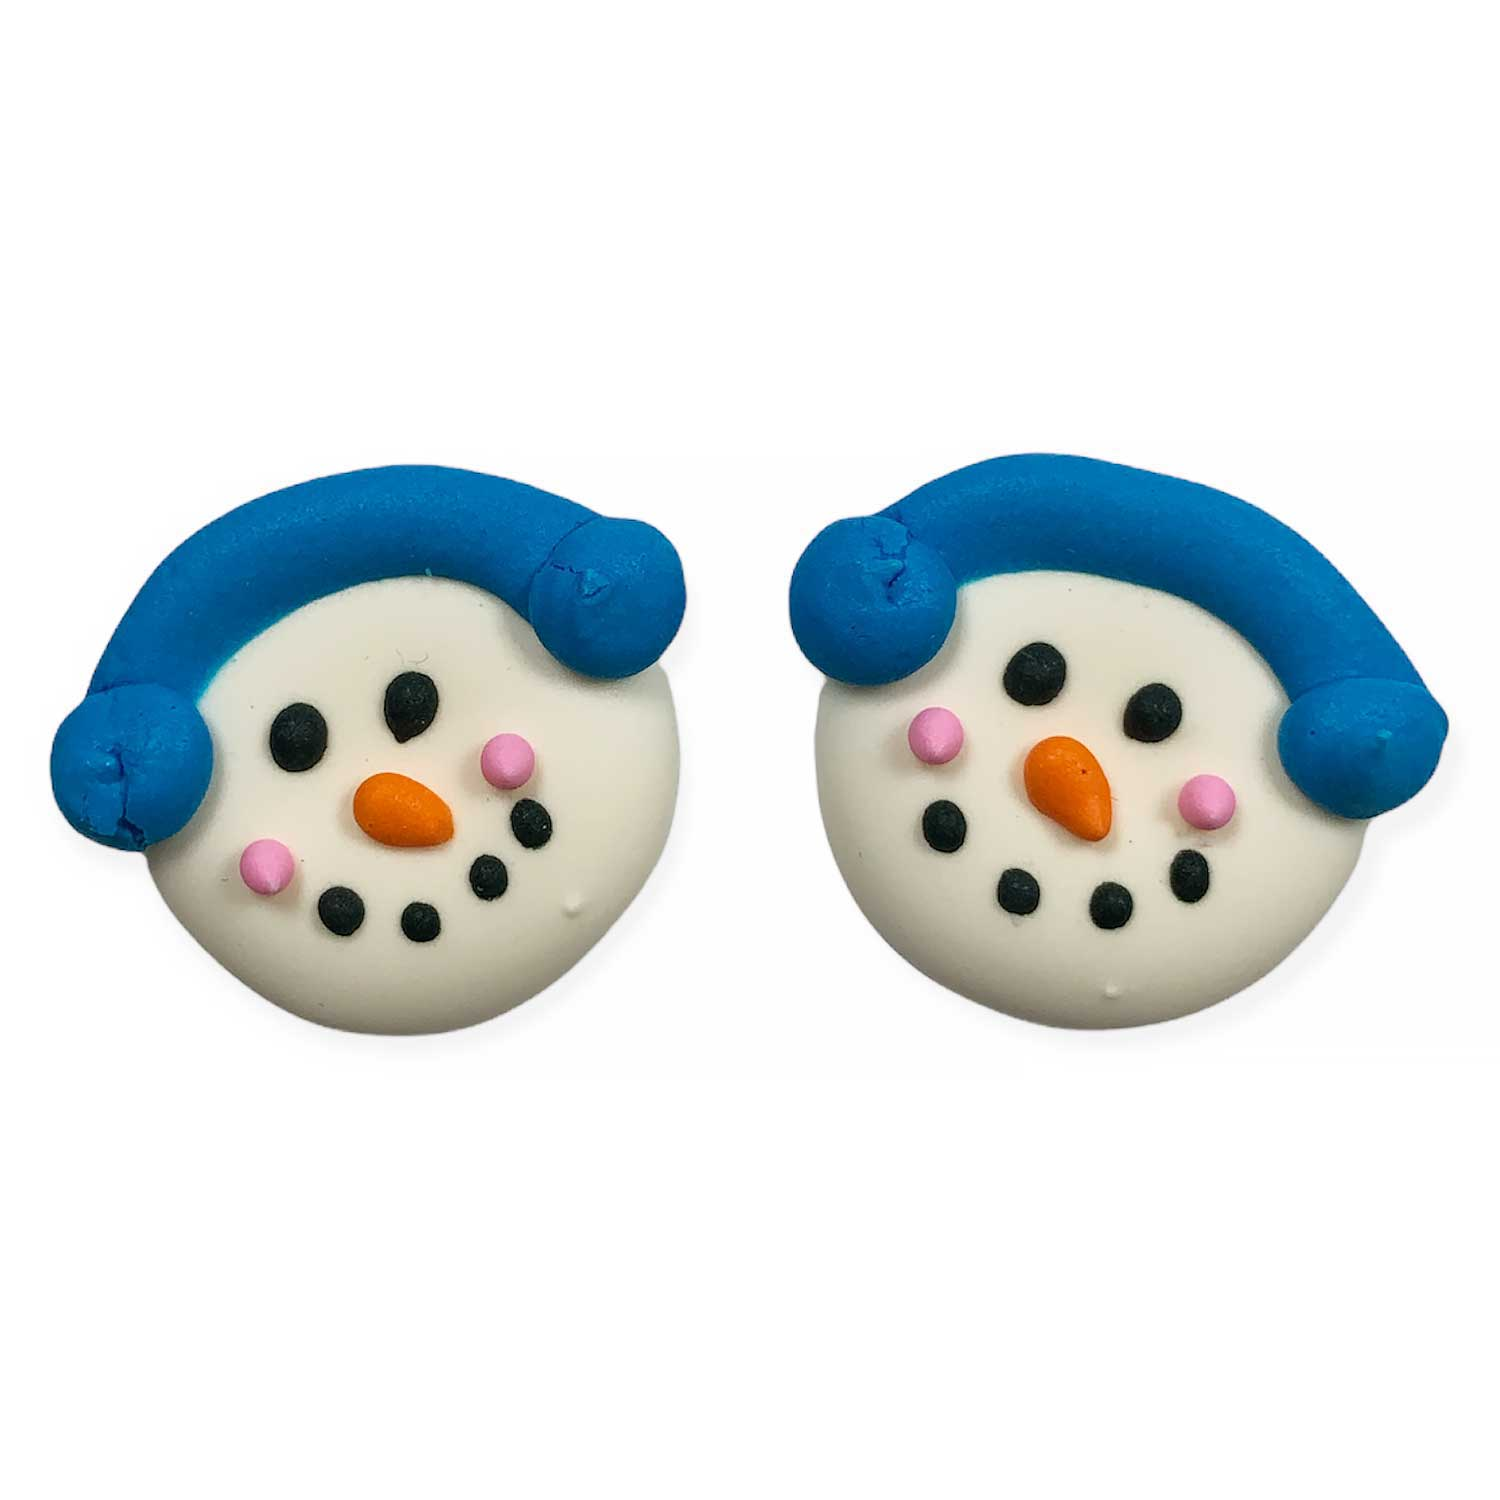 Icing Layons - Snowman Face